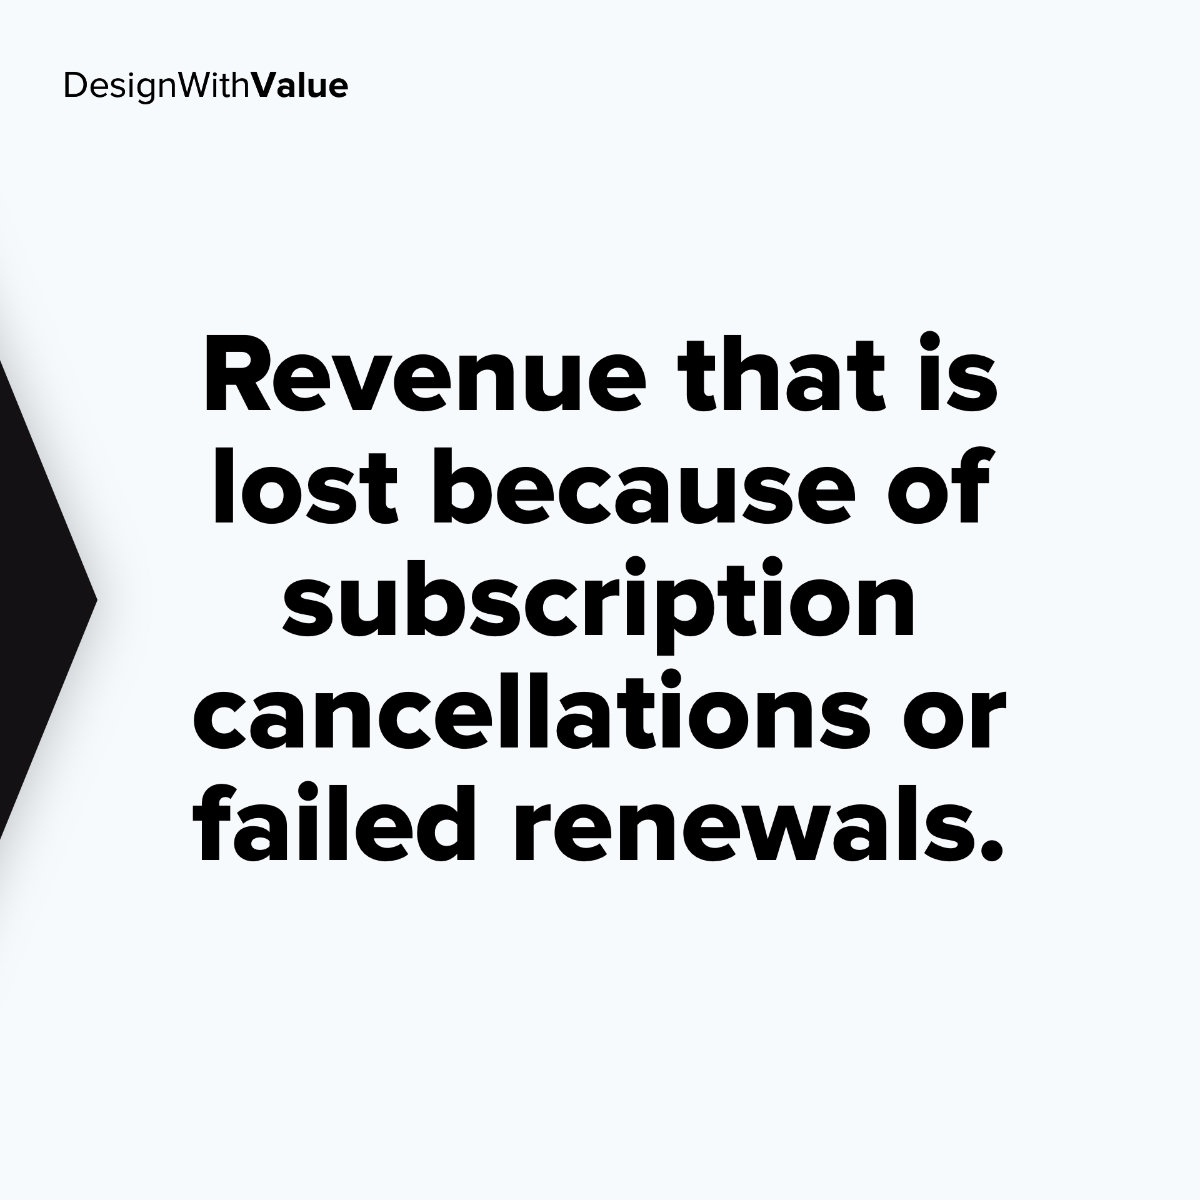 Revenue that is lost because of subscription cancellations or failed renewals